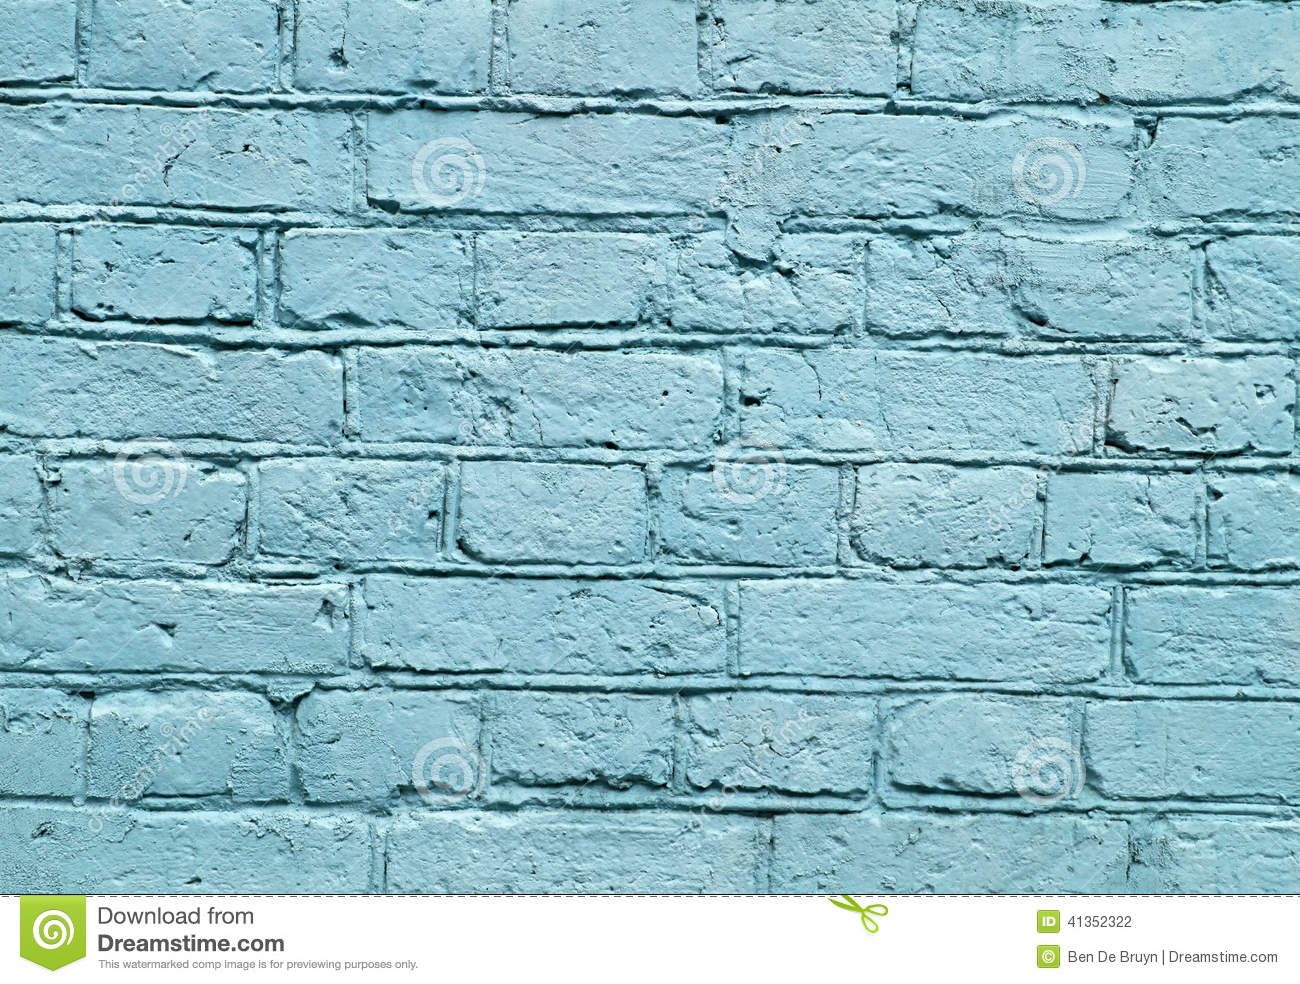 How To Paint A Brick Wall To Look Worn